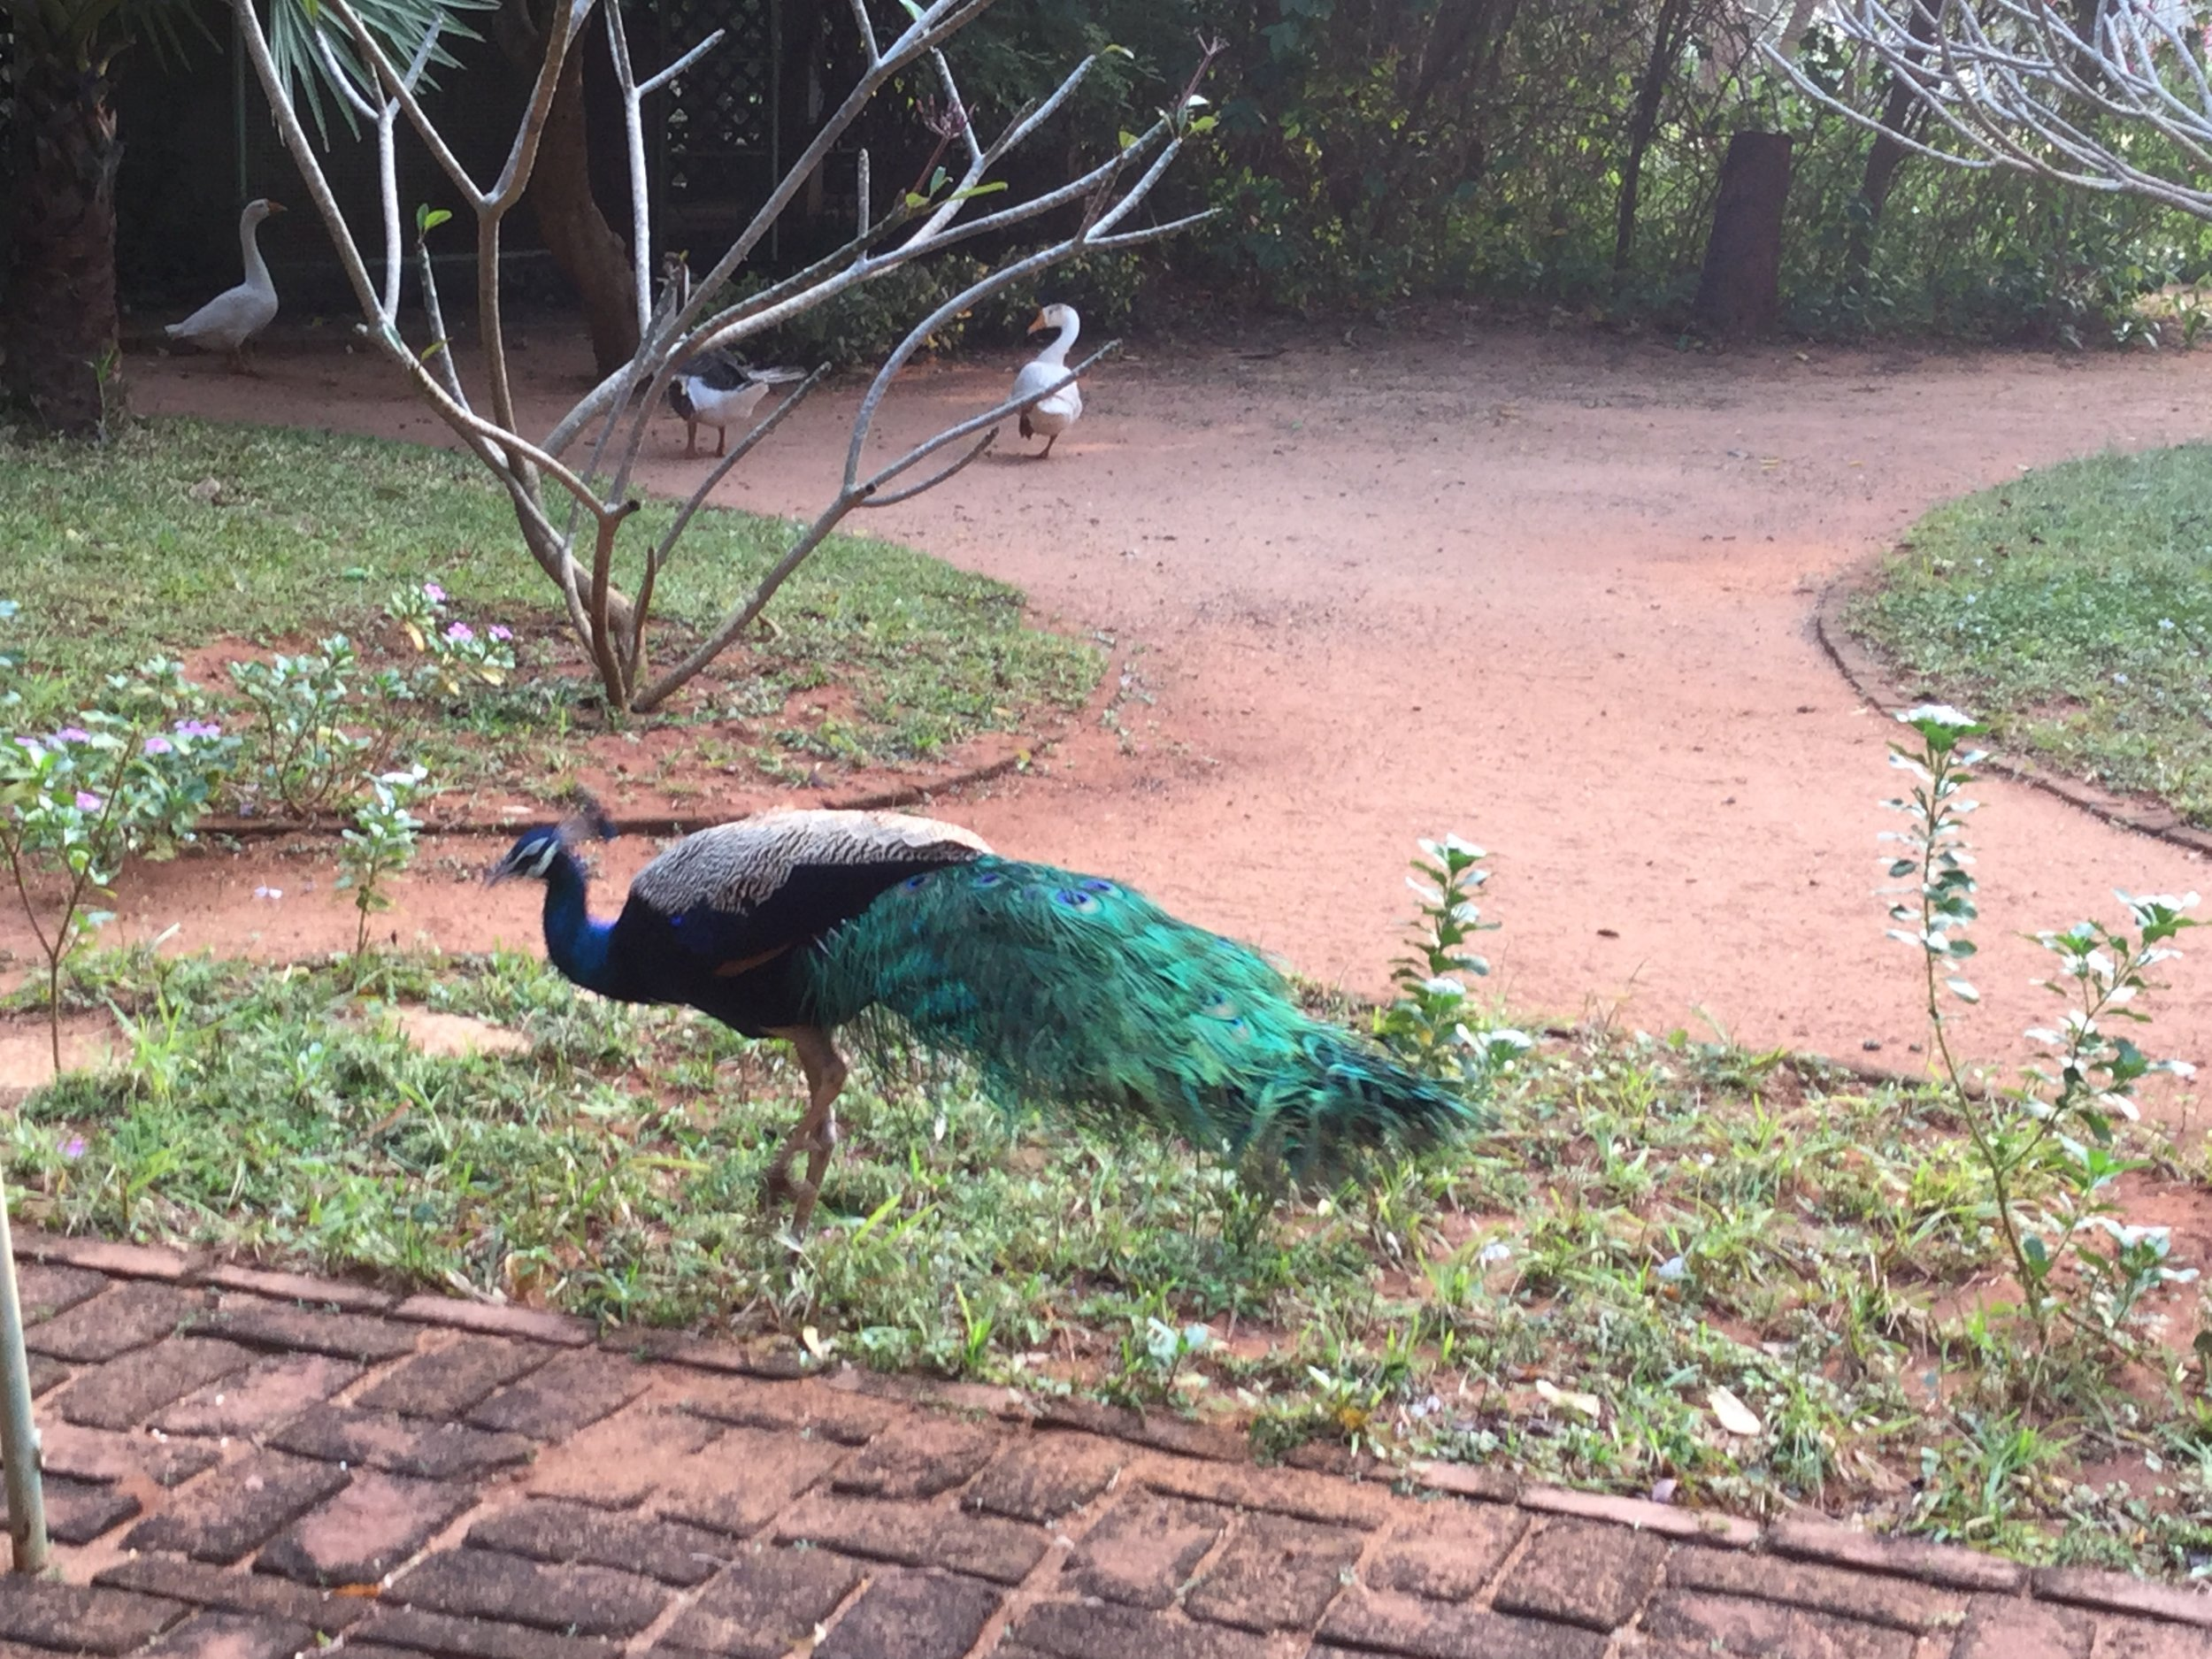 A beautiful one.  The peacock is India's national bird.